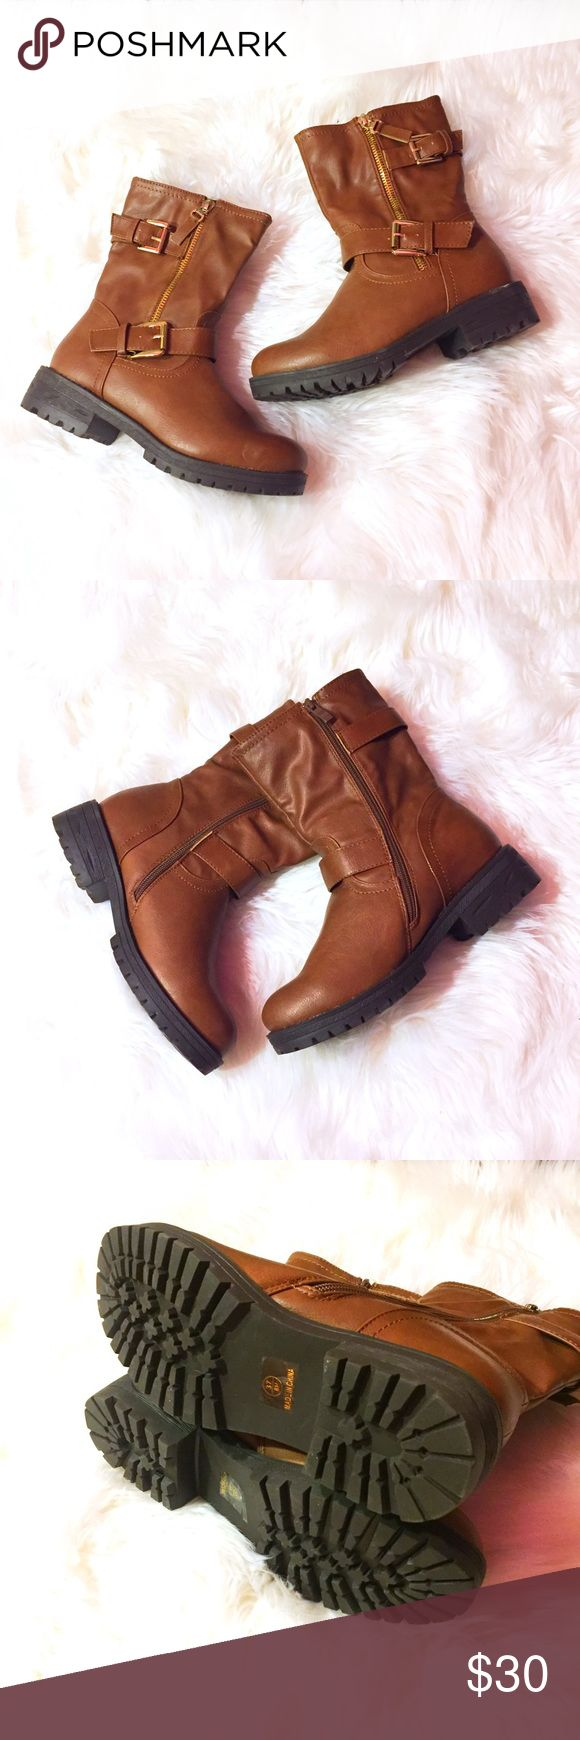 """Camel Motorcycle Boots 🏍 Double buckle motorcycle boots in camel body color, black sole and gold hardware. The sole has an interesting detail around the heel (see pics). 1.75"""" heel, 8"""" shaft height, 13"""" circumference, fully functional zipper on inside. Ordered online but was sent these by mistake so looking to get rid of them. Doesn't come with original box. Offers welcome. Please ask questions and feel free to bundle with other items in my closet for a discount! 💕 Shoes Combat & Moto…"""